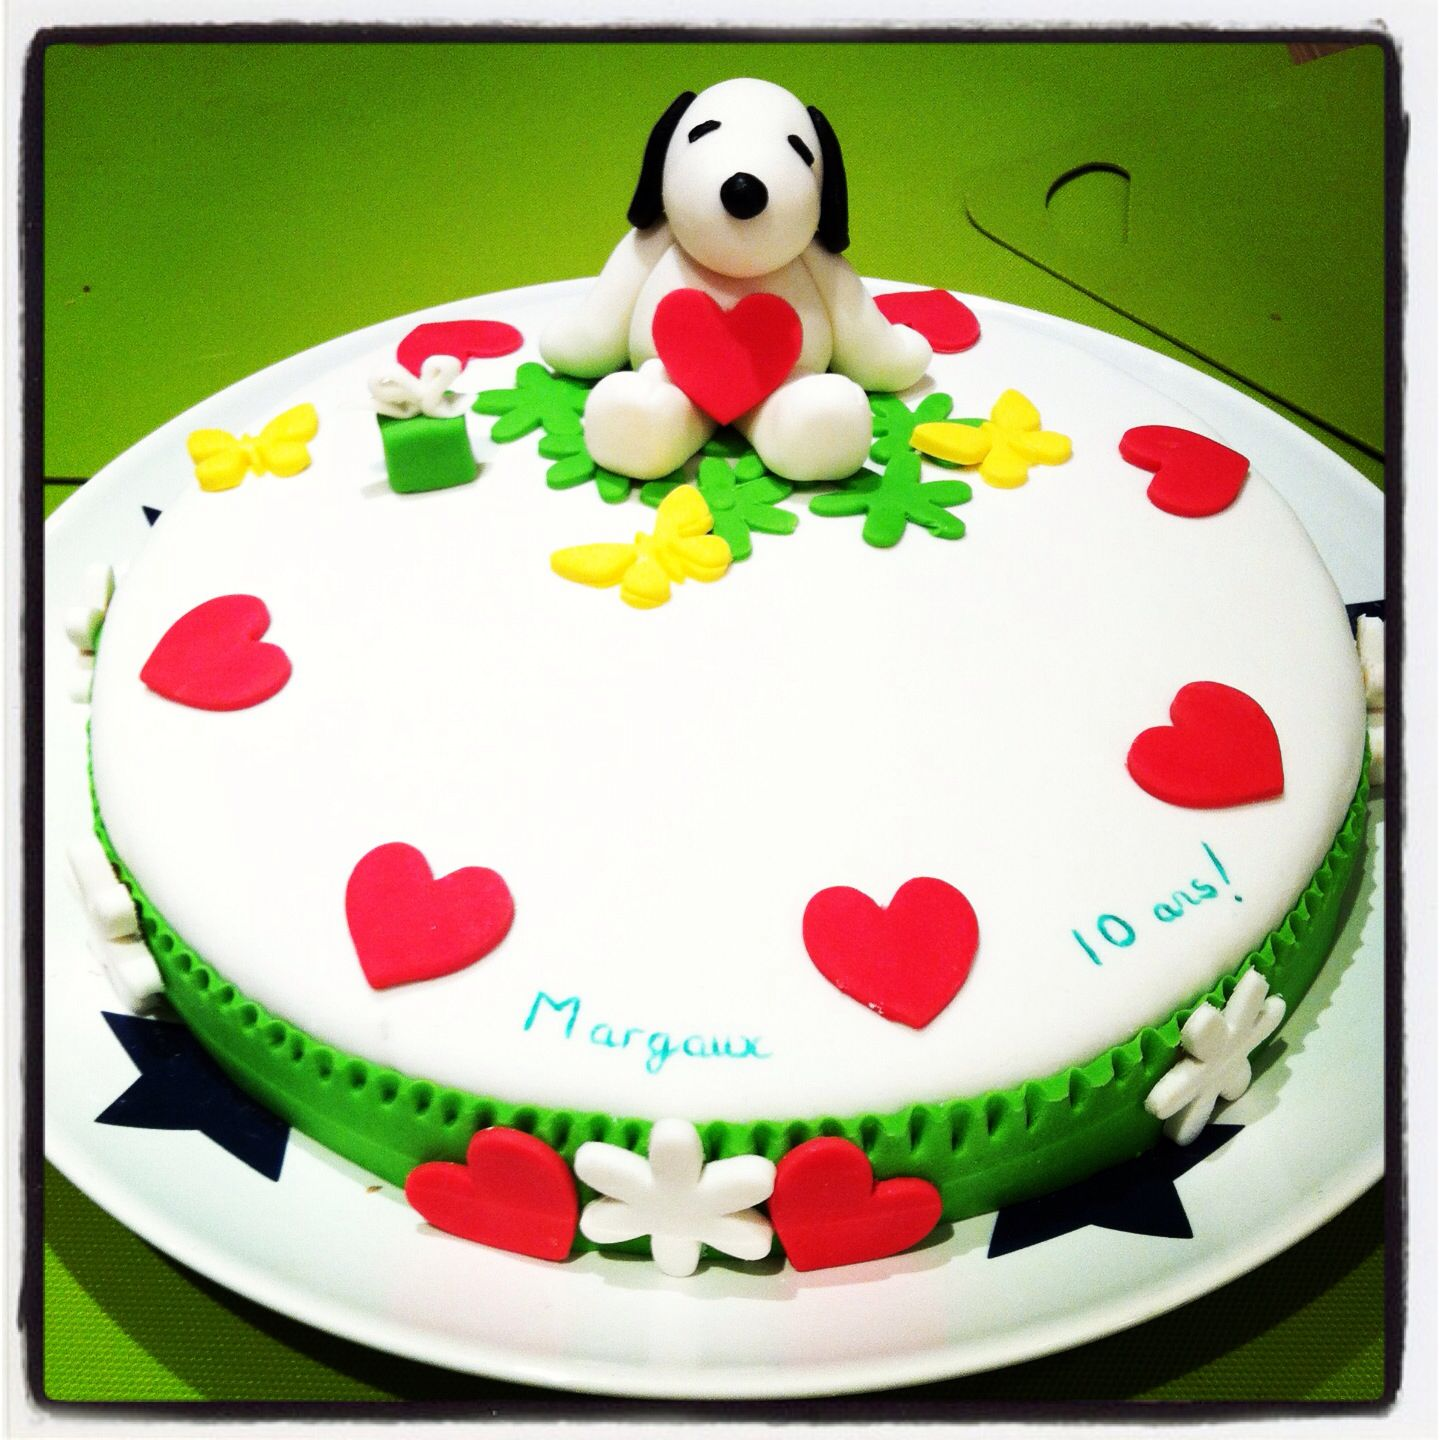 Snoopy Peanuts Birthday Cake Ideas And Designs